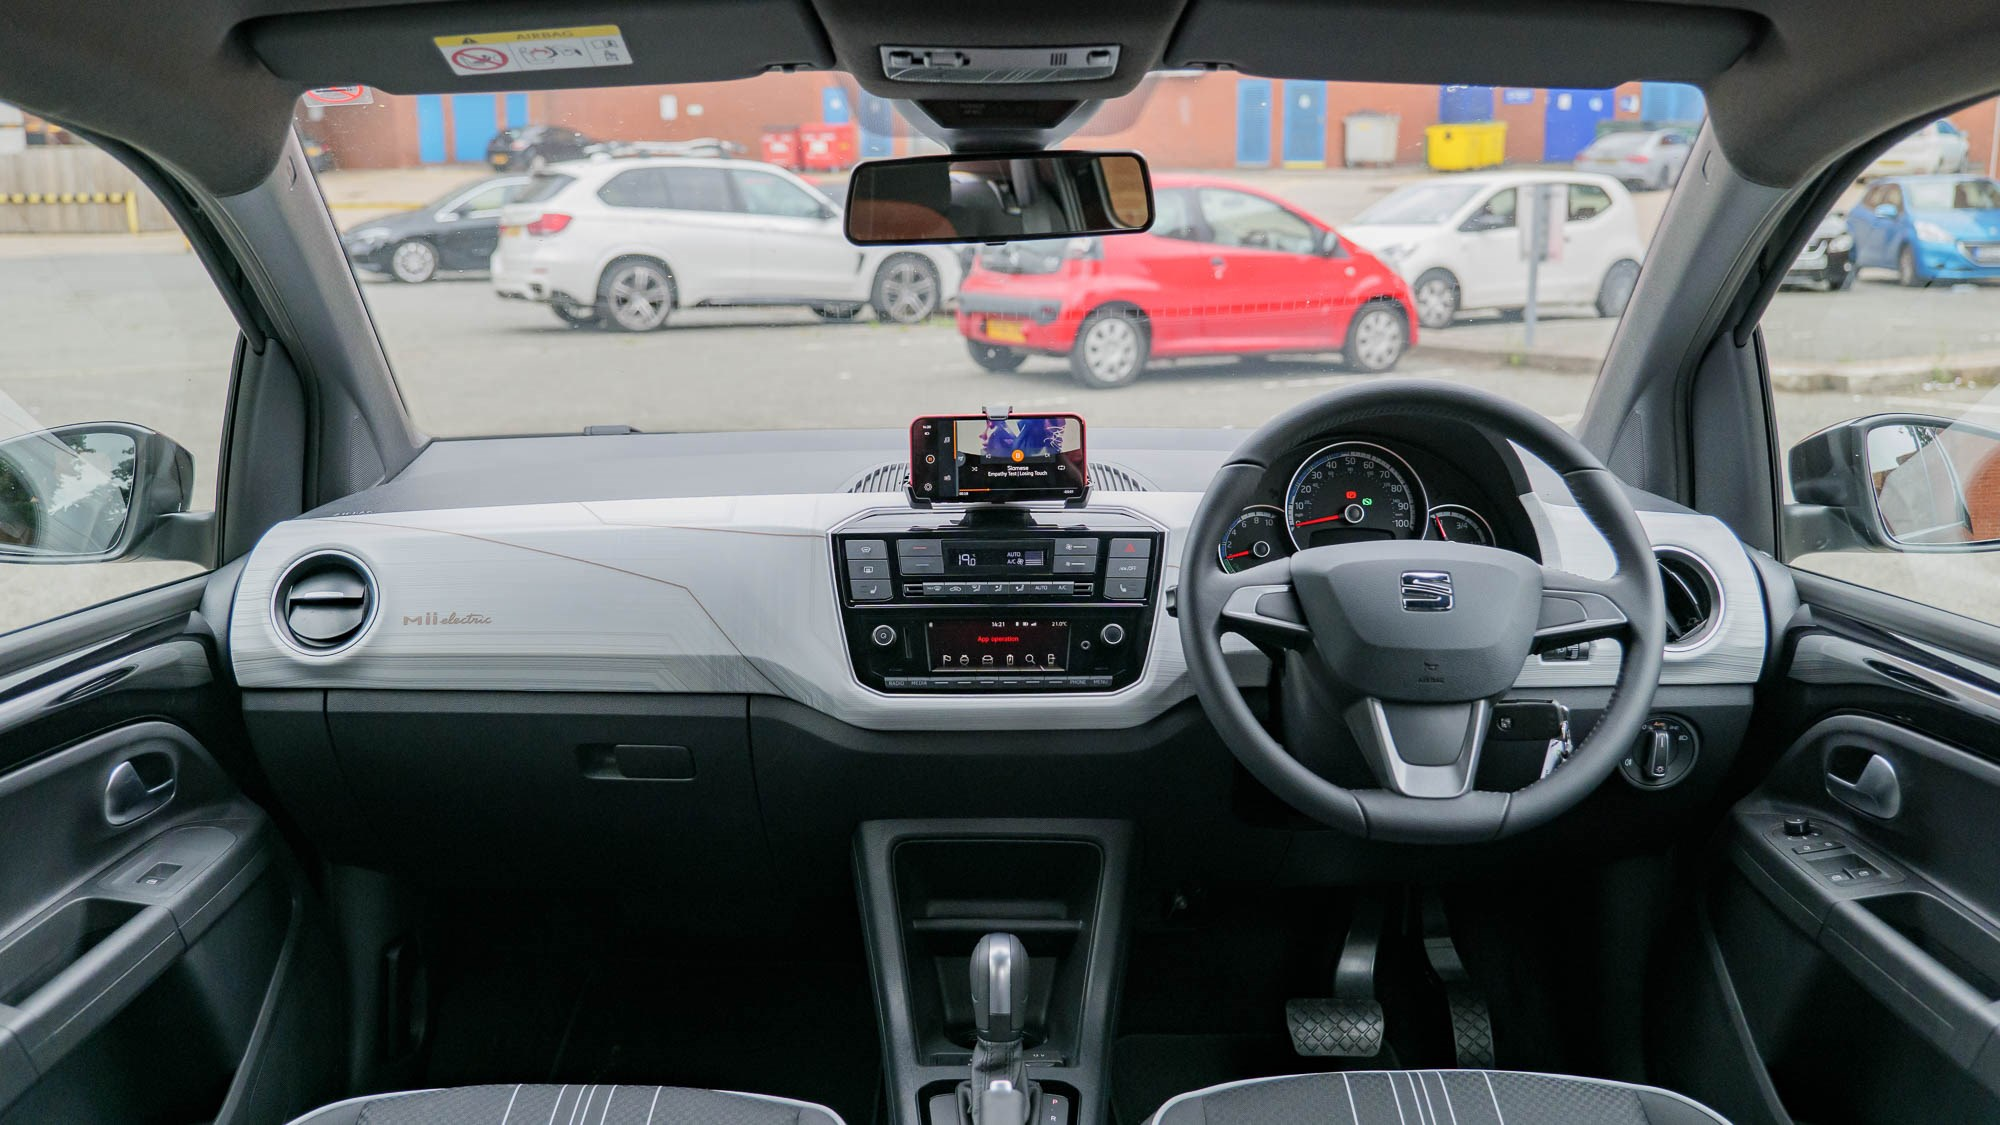 SEAT Mii Electric dashboard, RHD with phone in dock